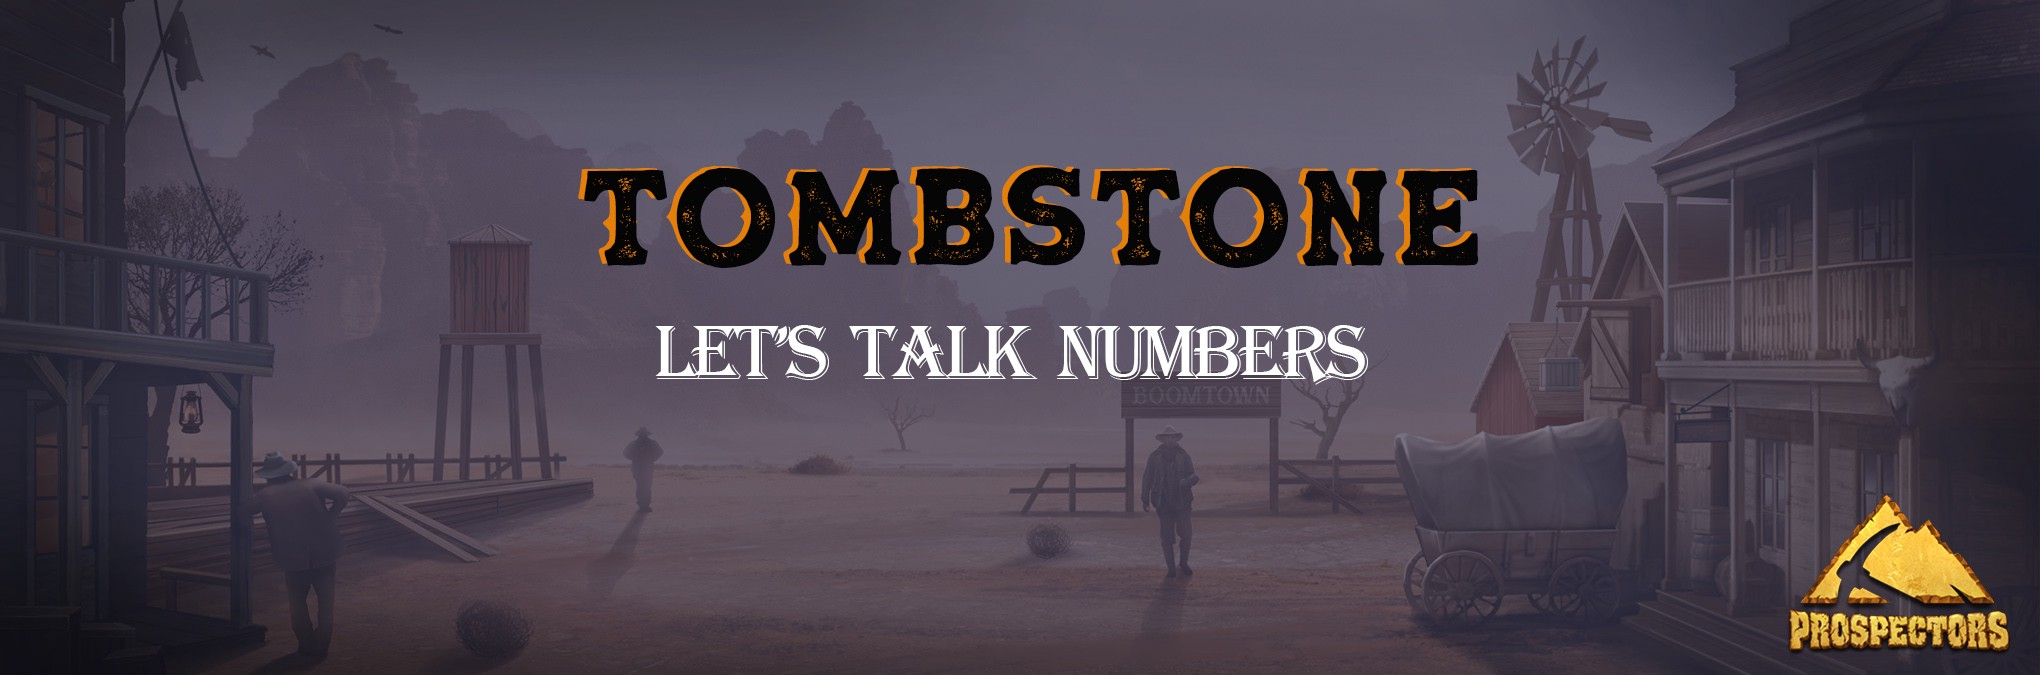 The Tombstone Boomtown: let's talk numbers